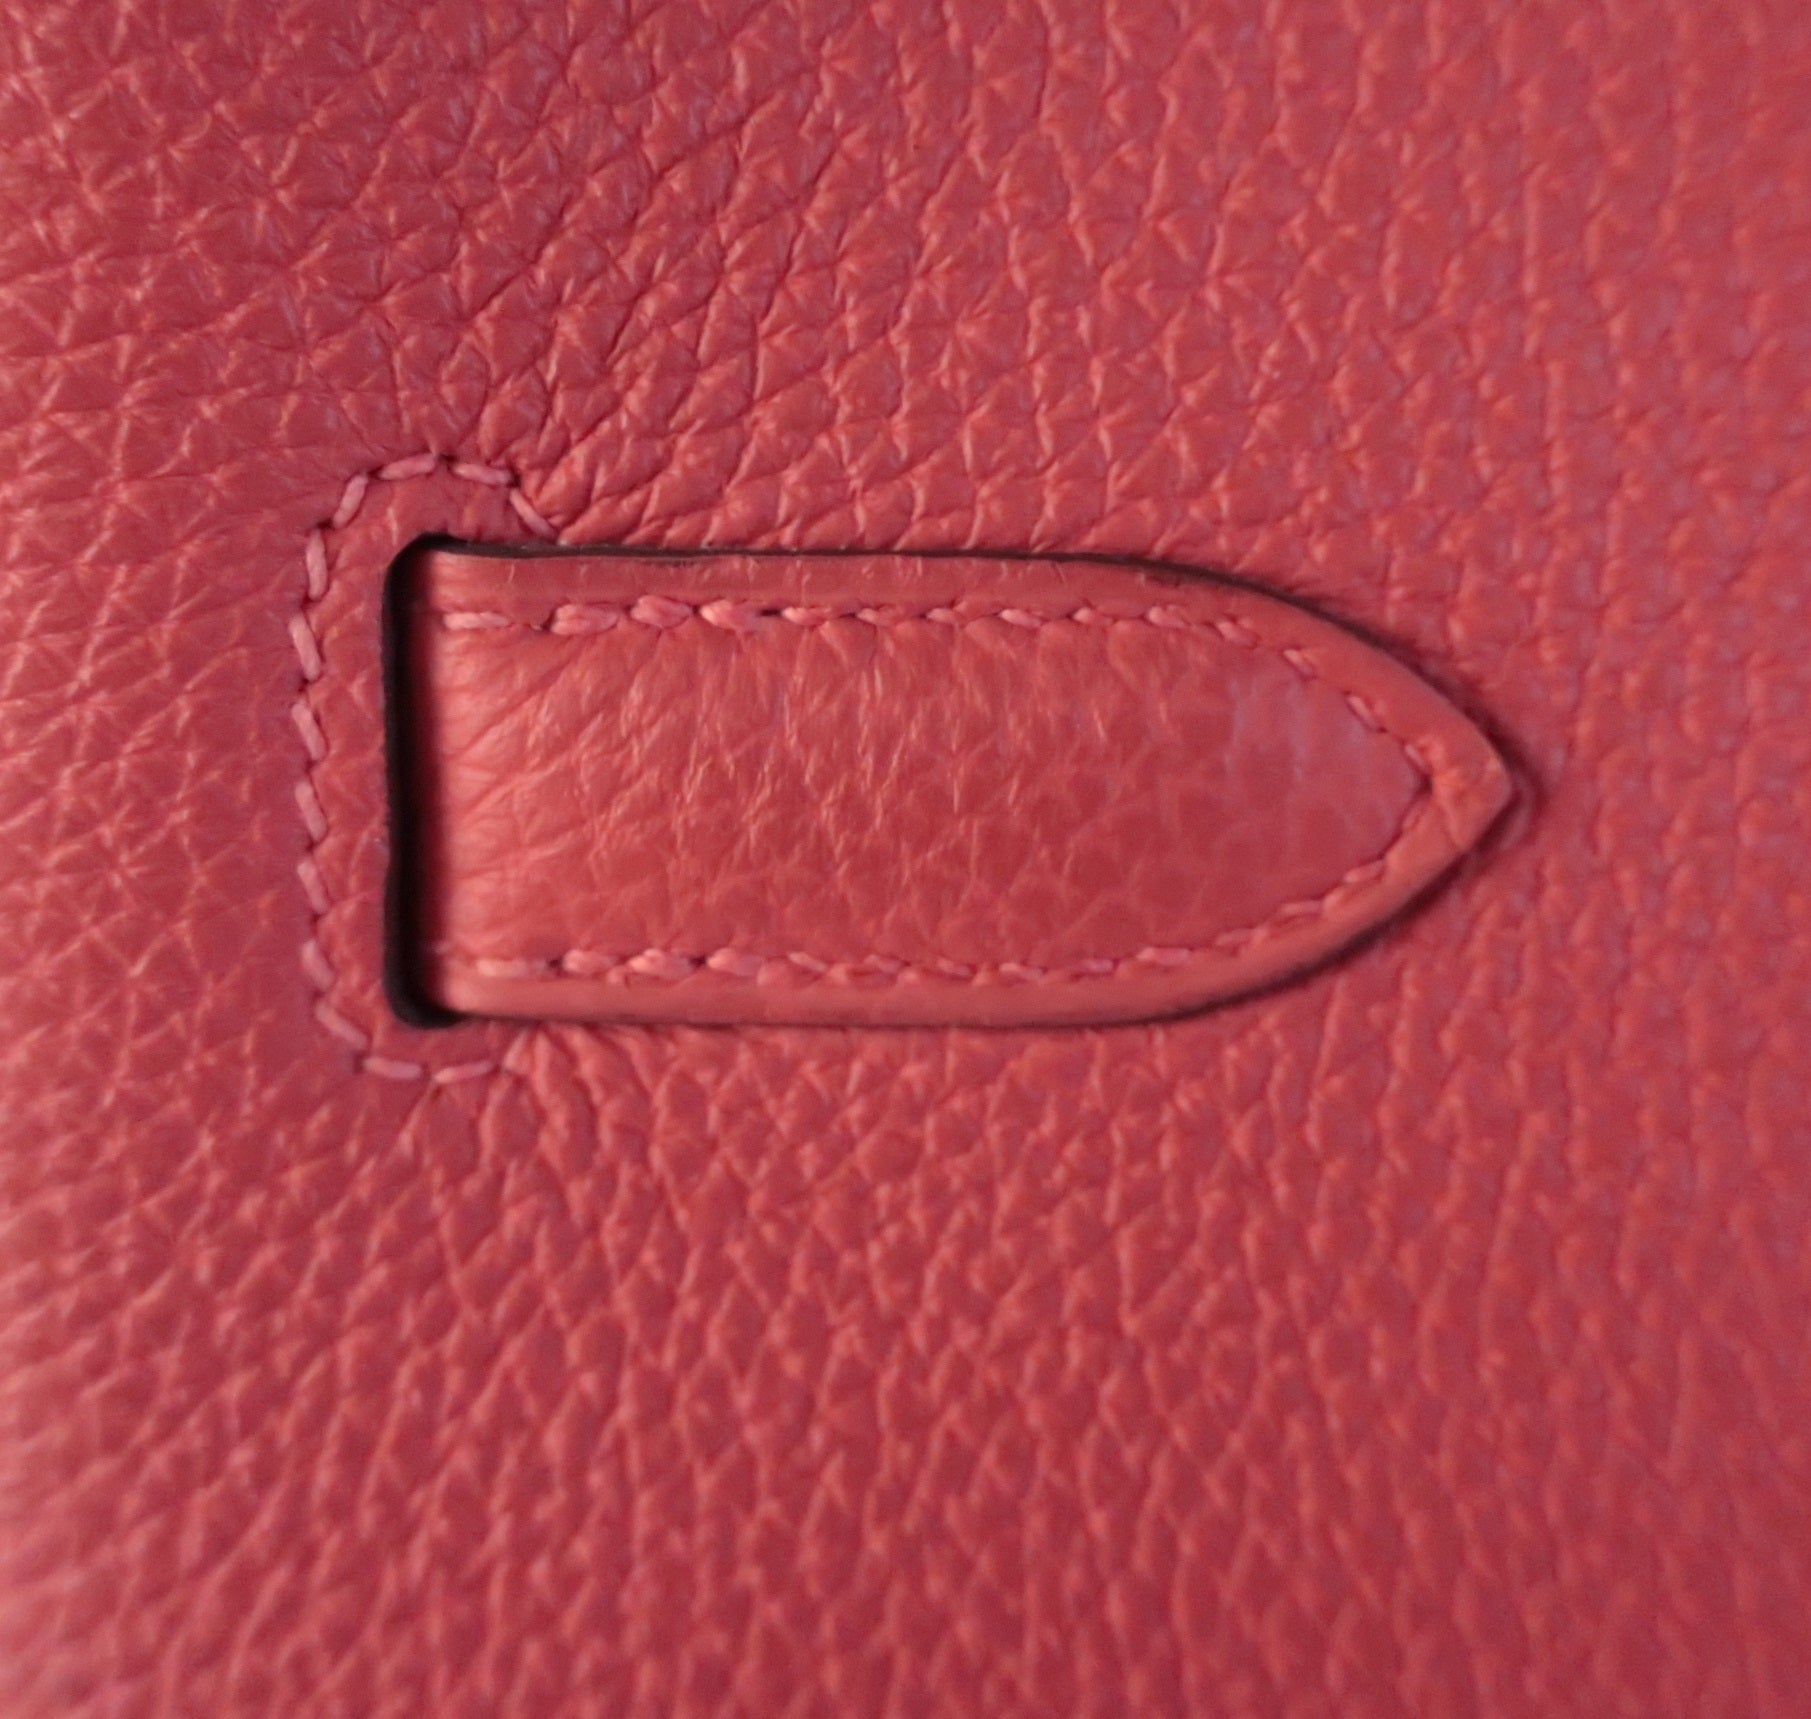 Ultimate Hermes Leathers Guide: What Are Hermes Bags Made Of? Hermes Togo Leather